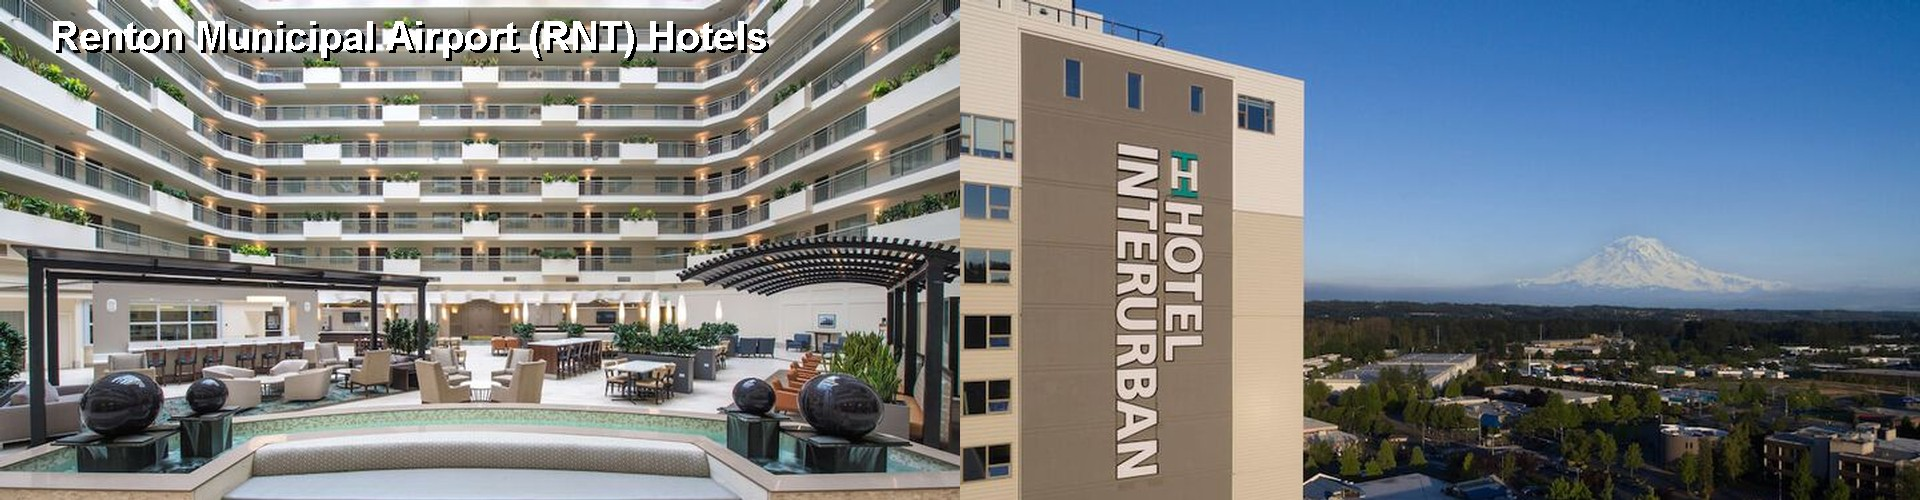 5 Best Hotels near Renton Municipal Airport (RNT)